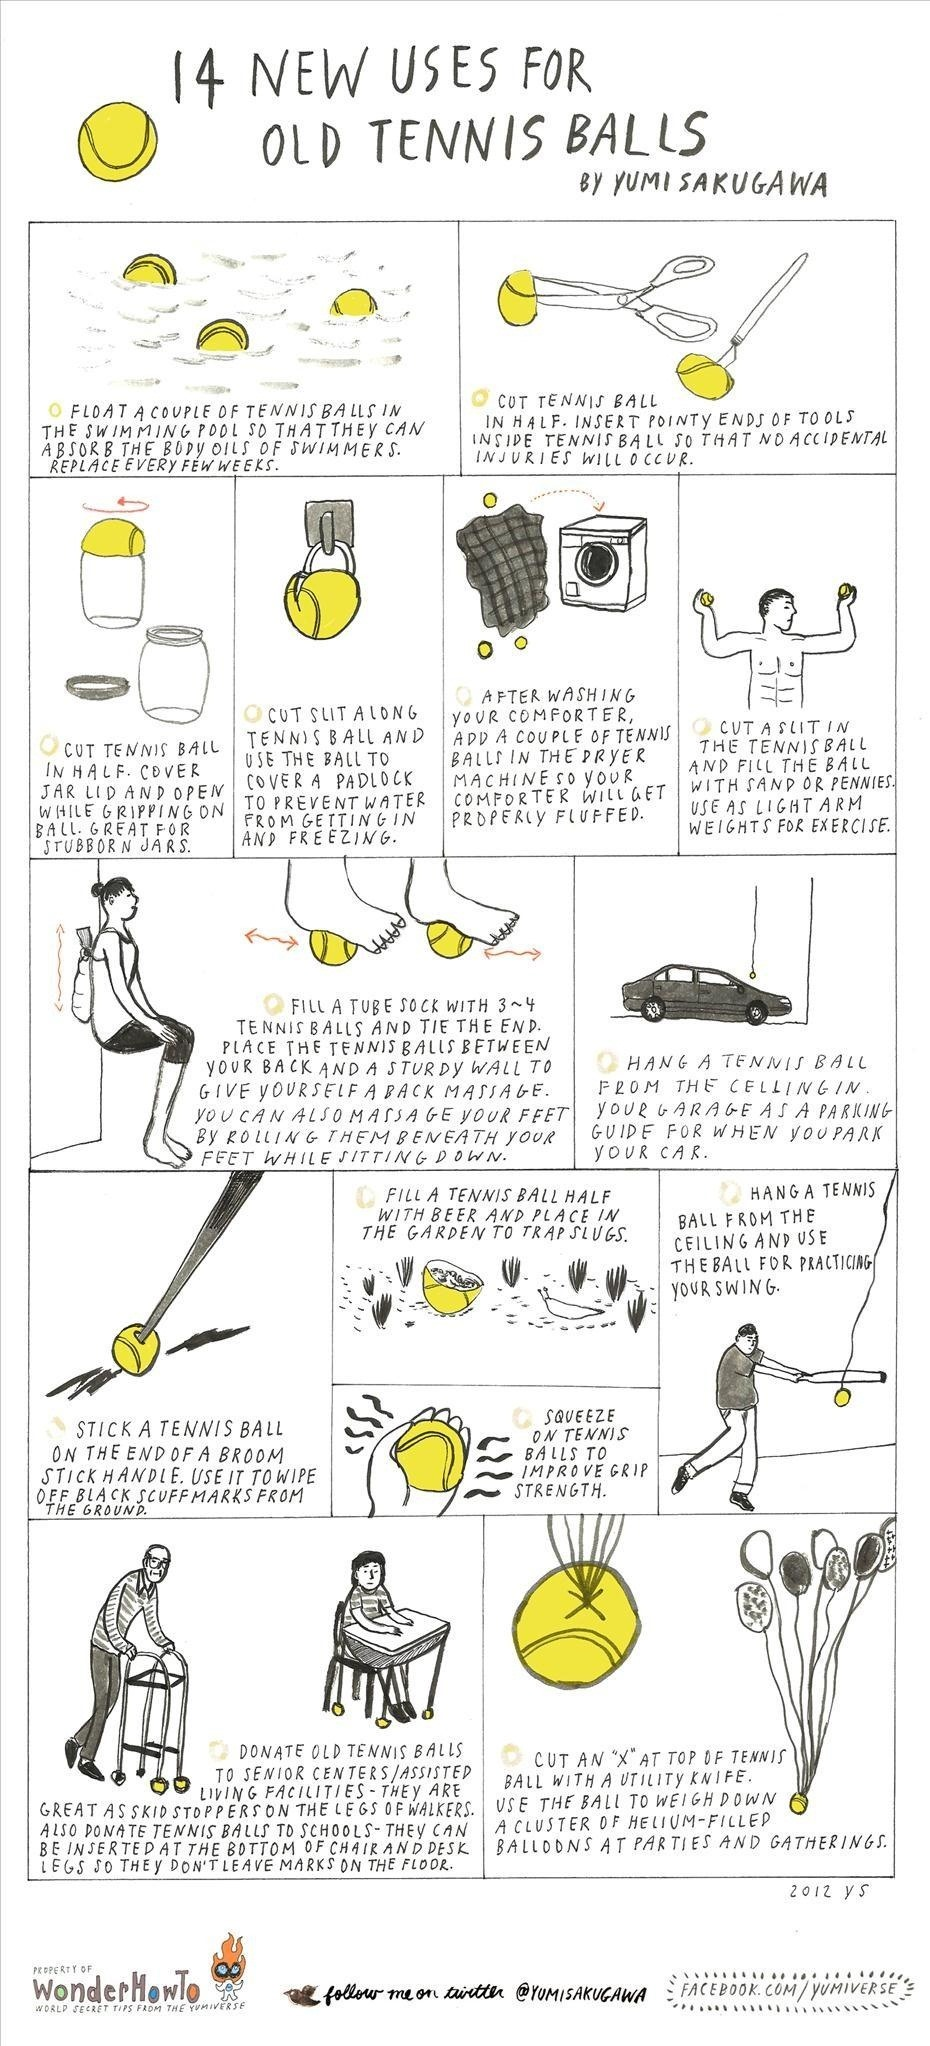 14 New Uses for Old Tennis Balls